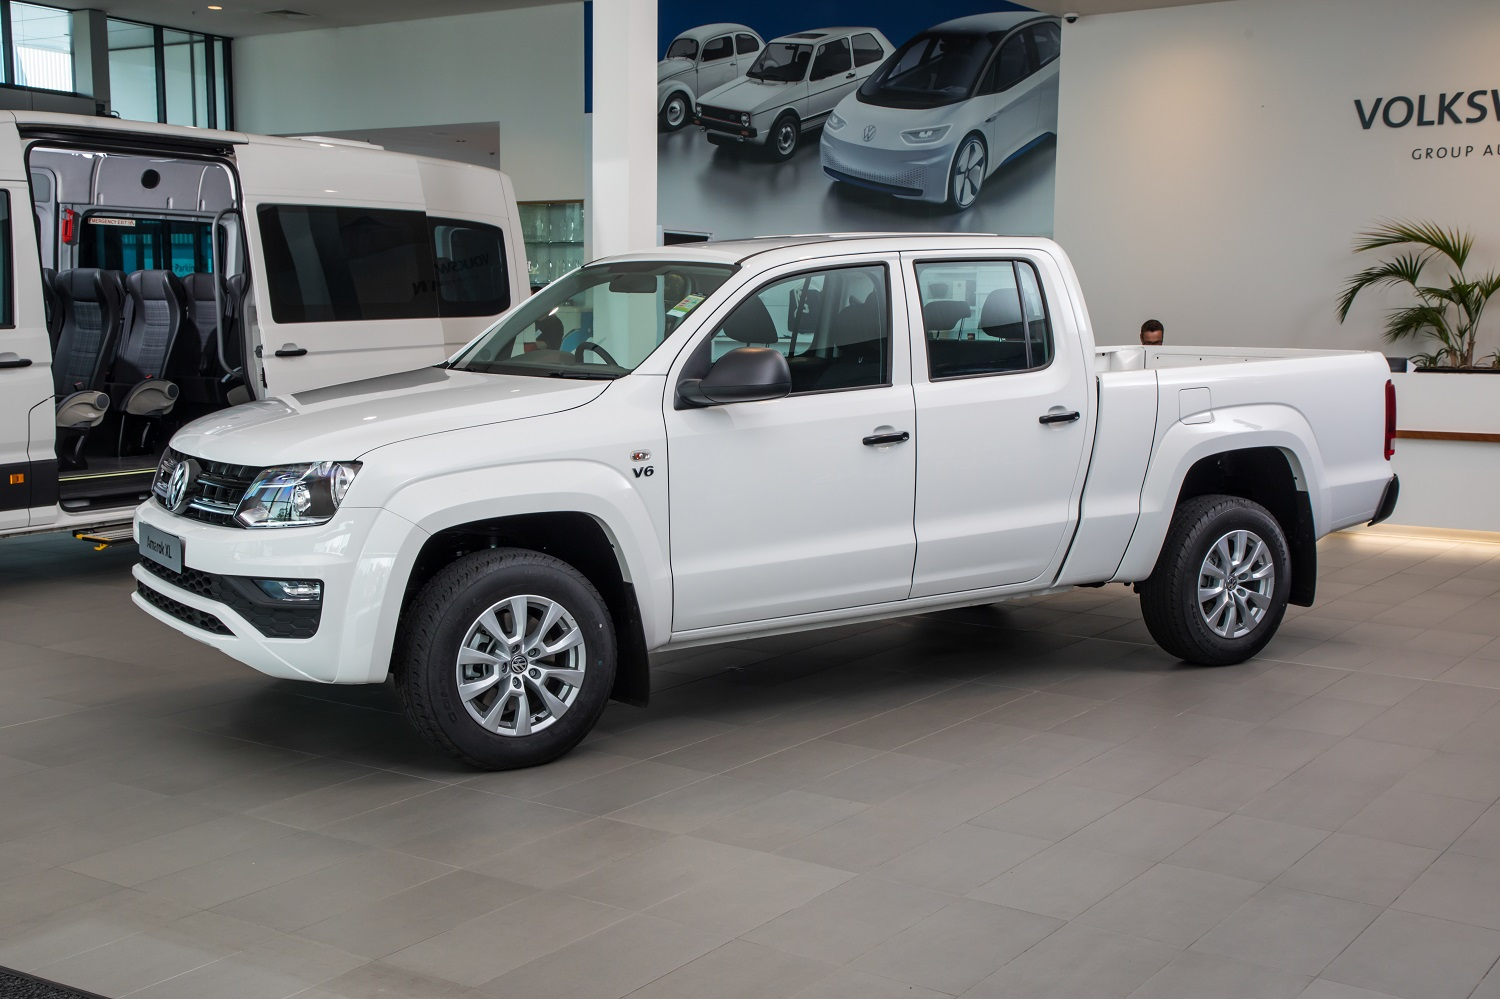 Volkswagen Amarok Xl And Xxl Conversion Range